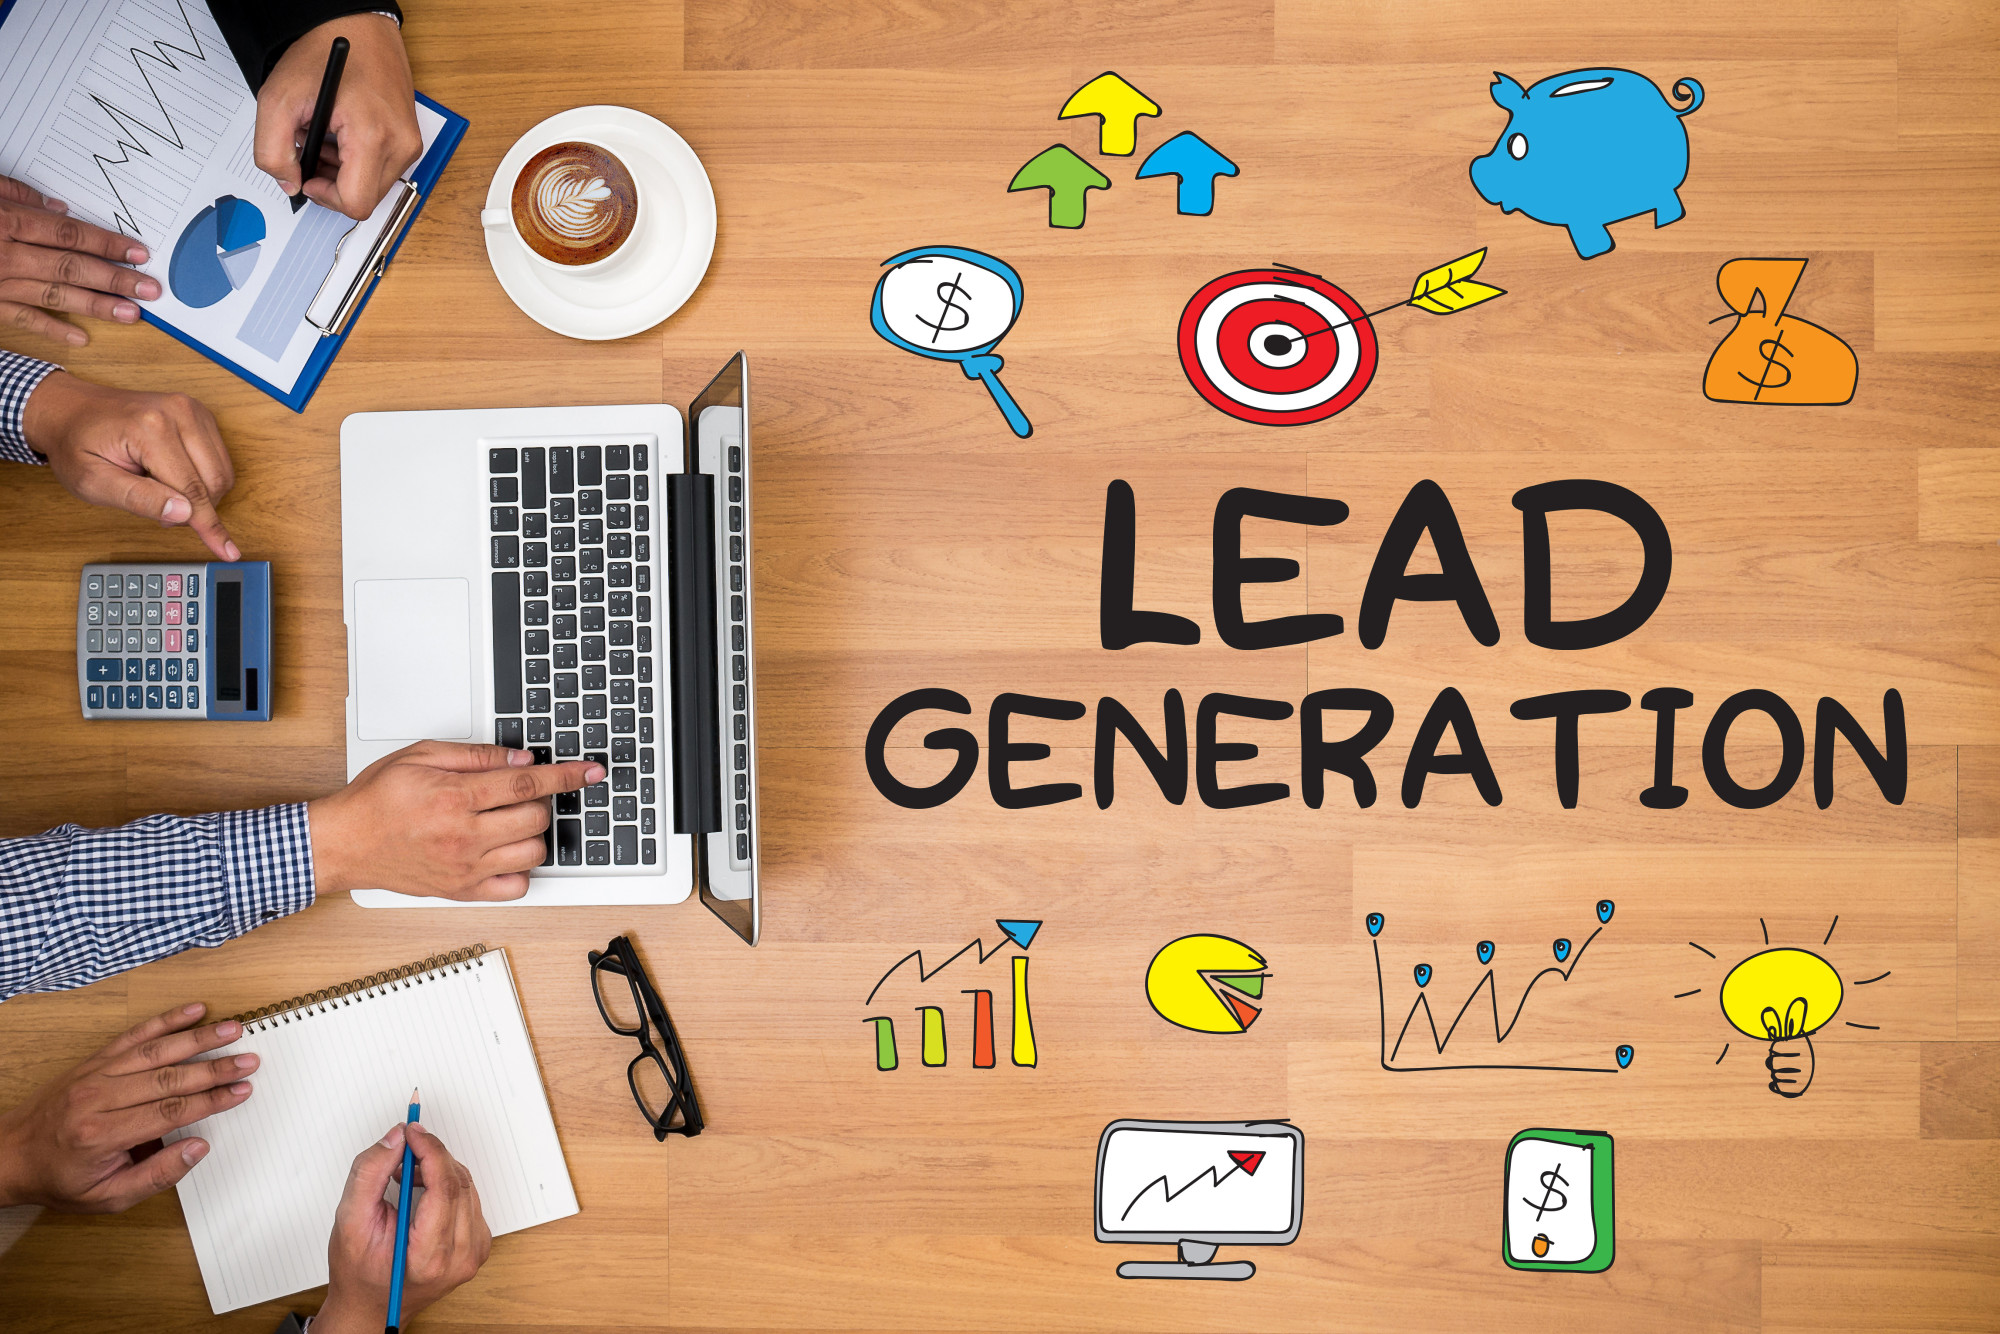 lead generation text and icons